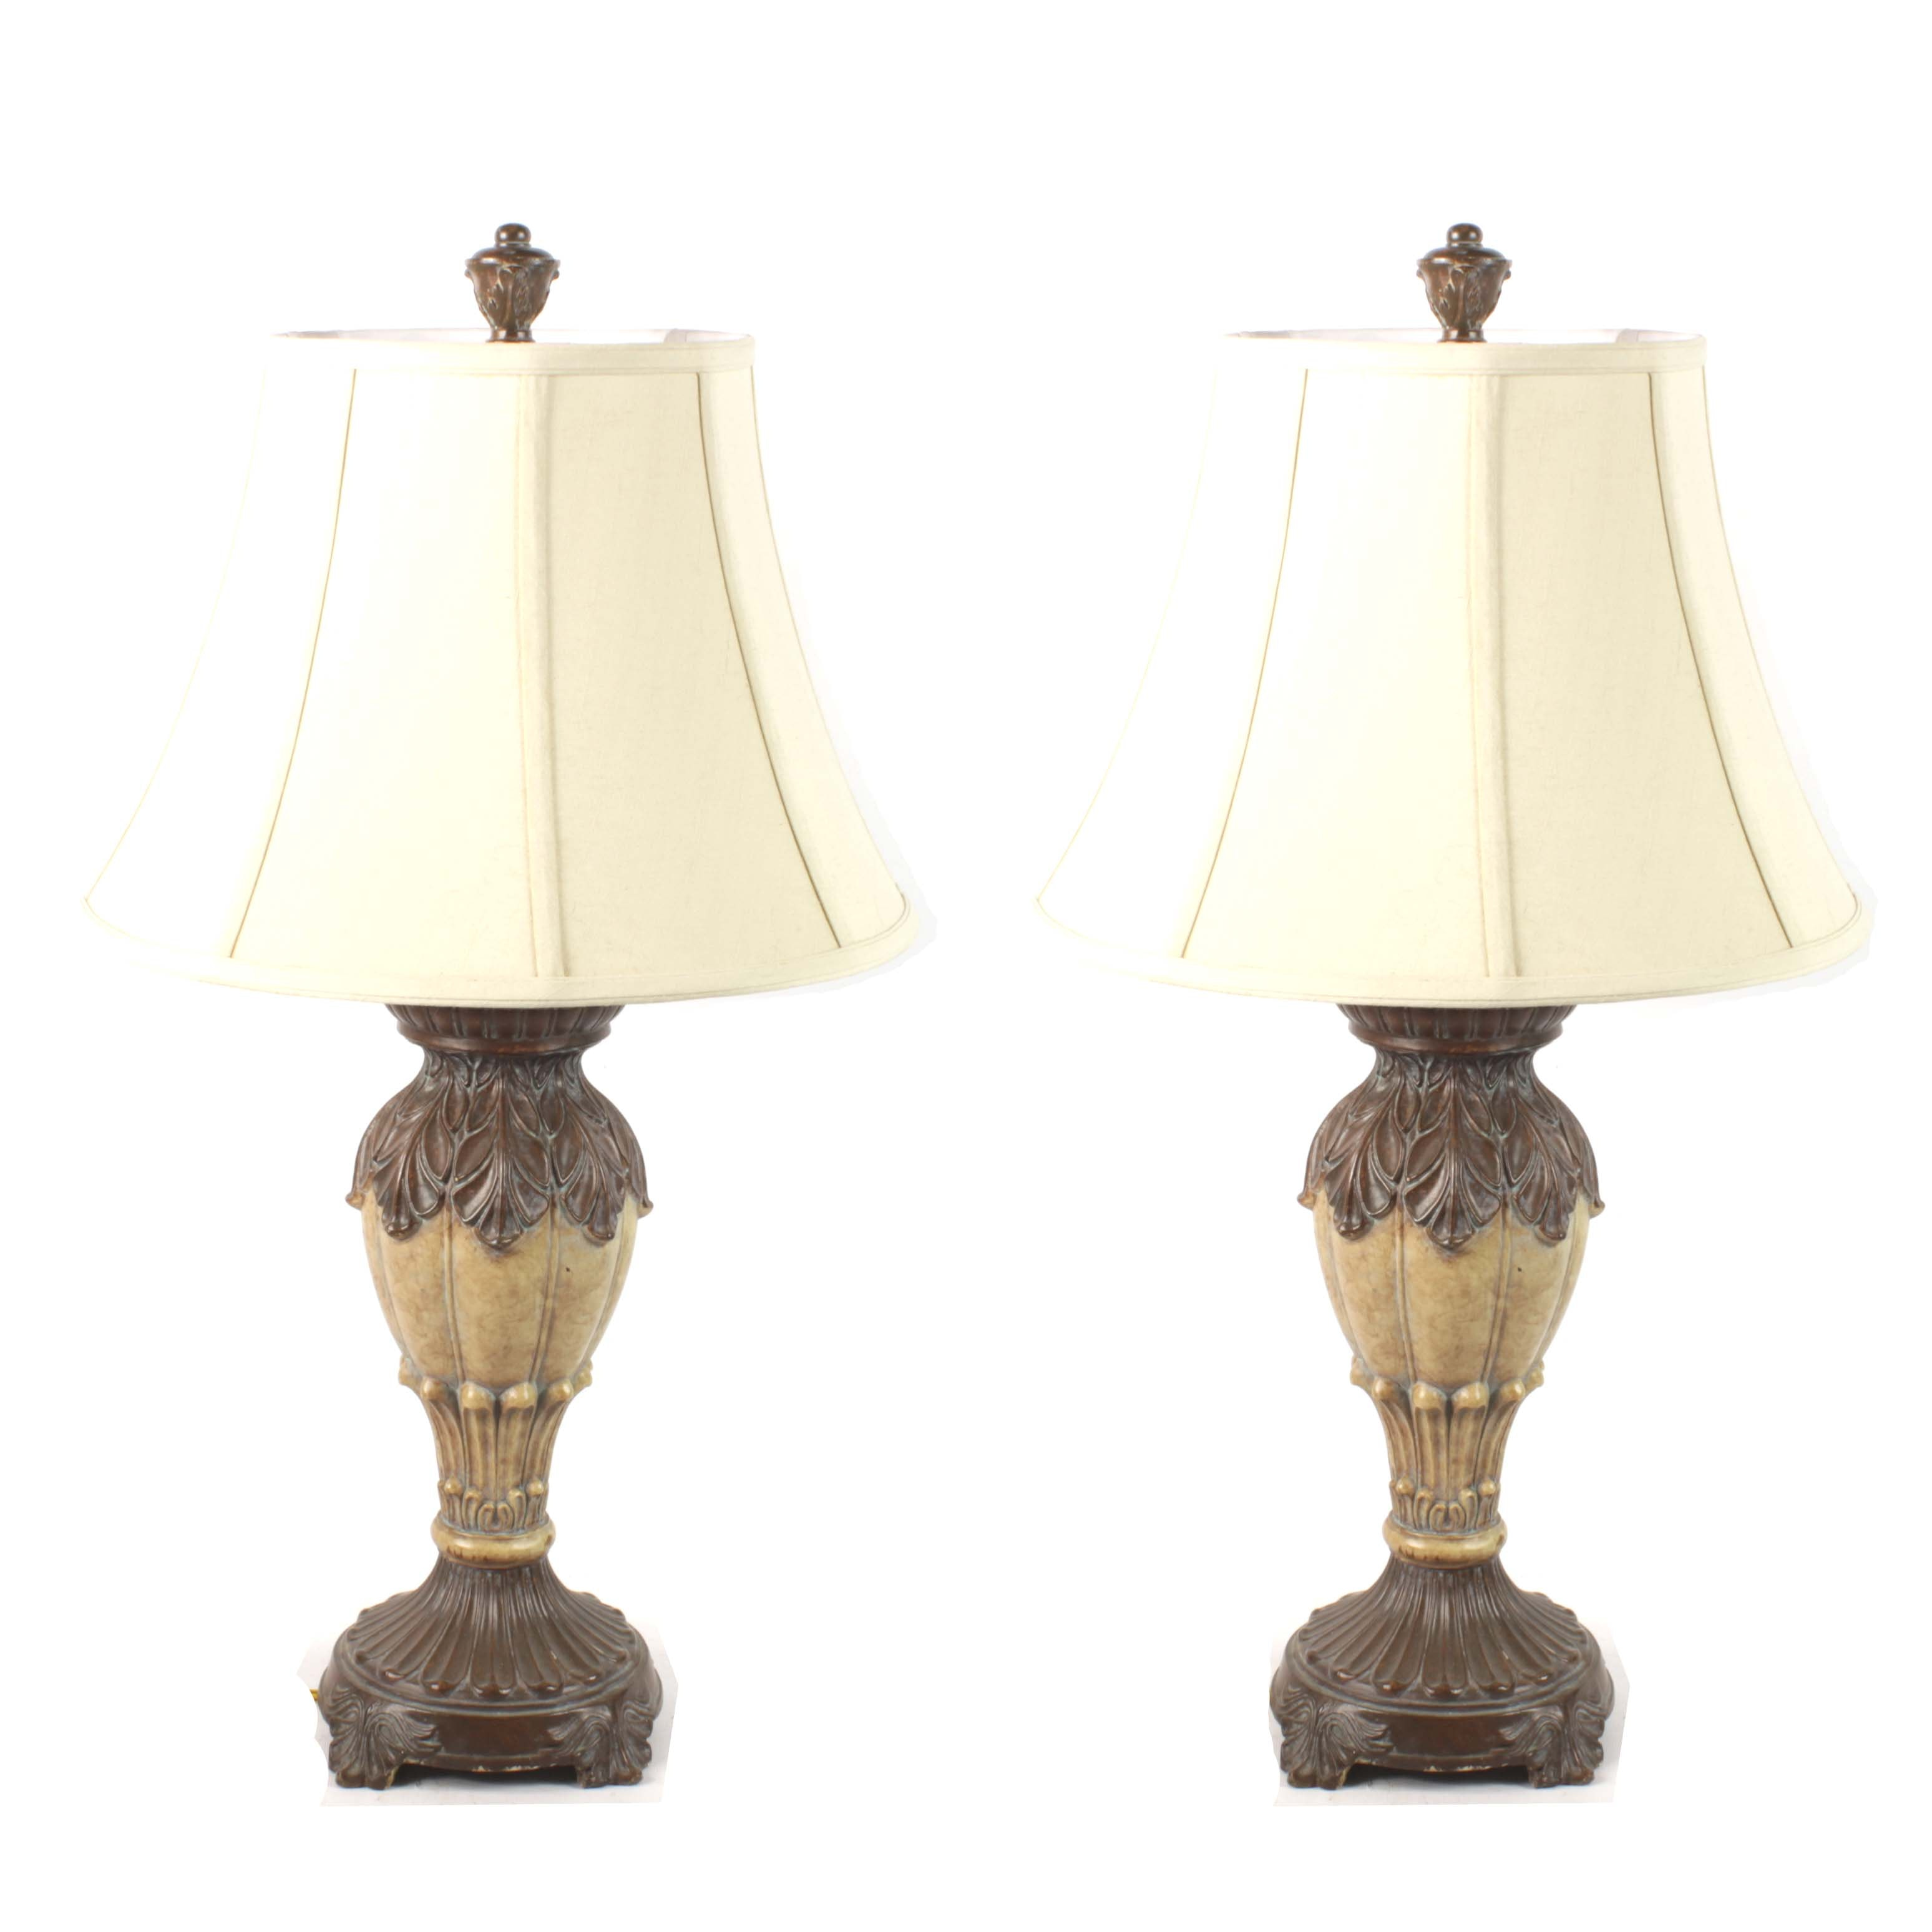 Acanthus Leaf Table Lamps